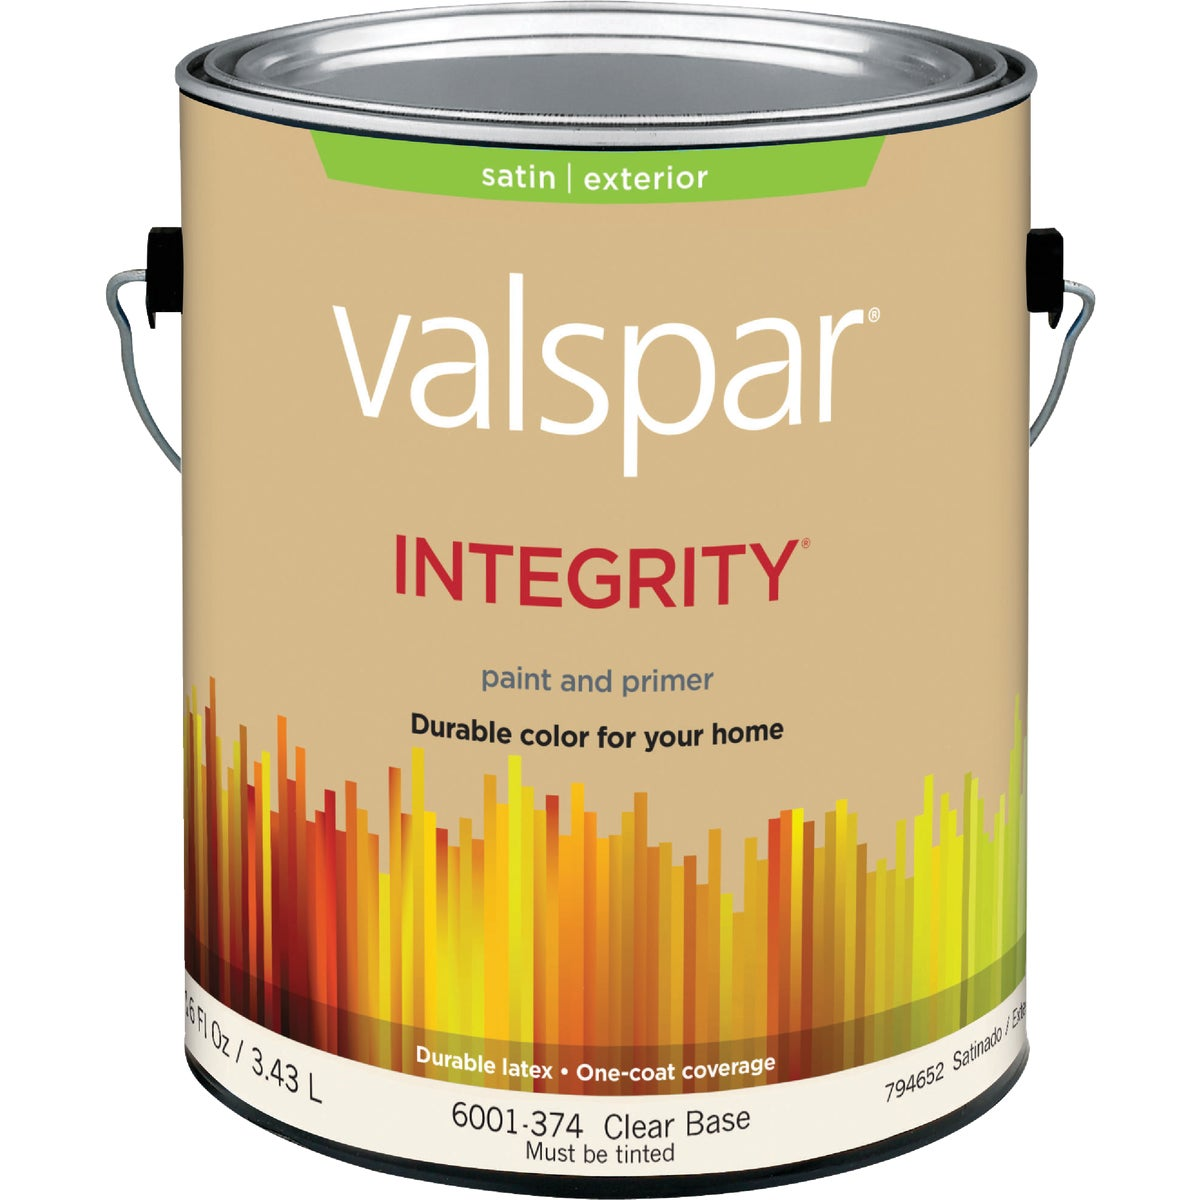 EXT SAT CLEAR BS PAINT - 004.6001374.007 by Valspar Corp